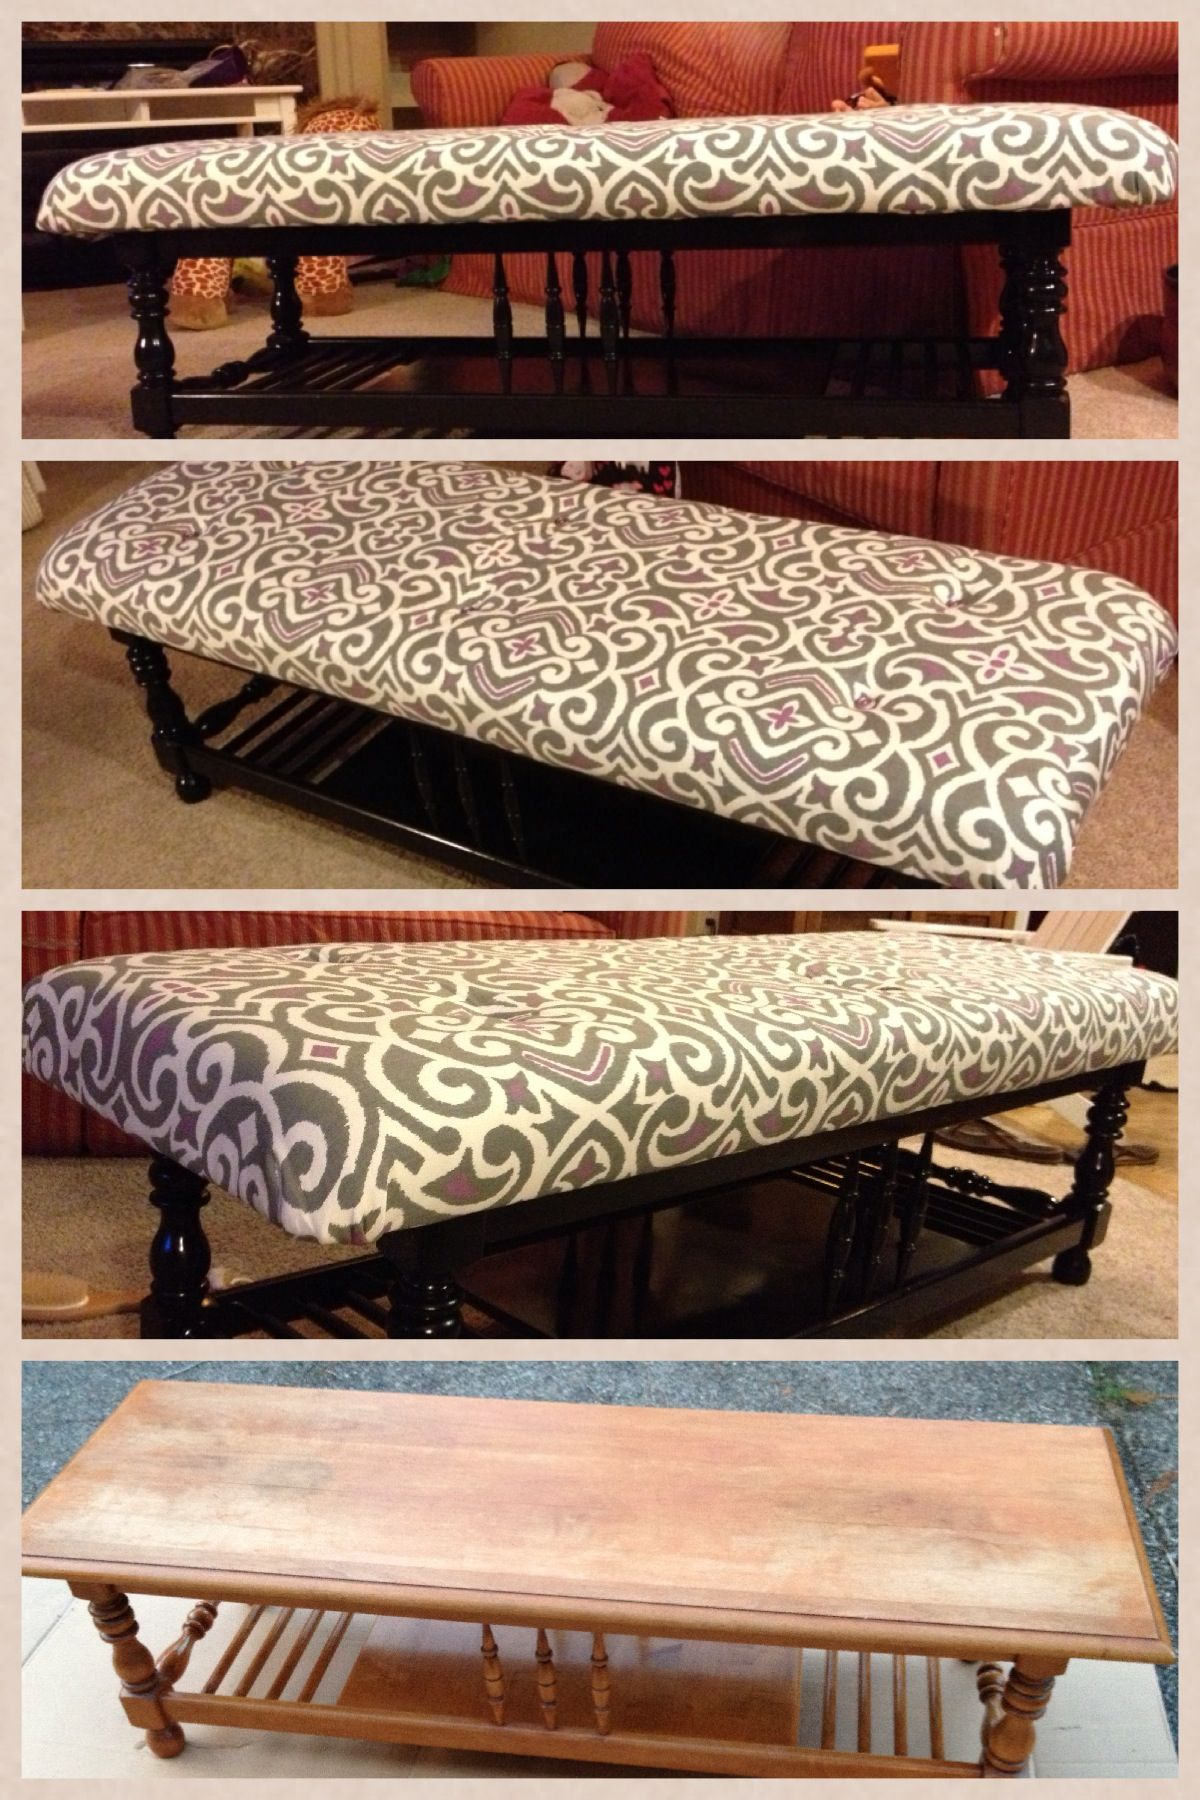 Coffee table turned padded bench for the foot of the bed